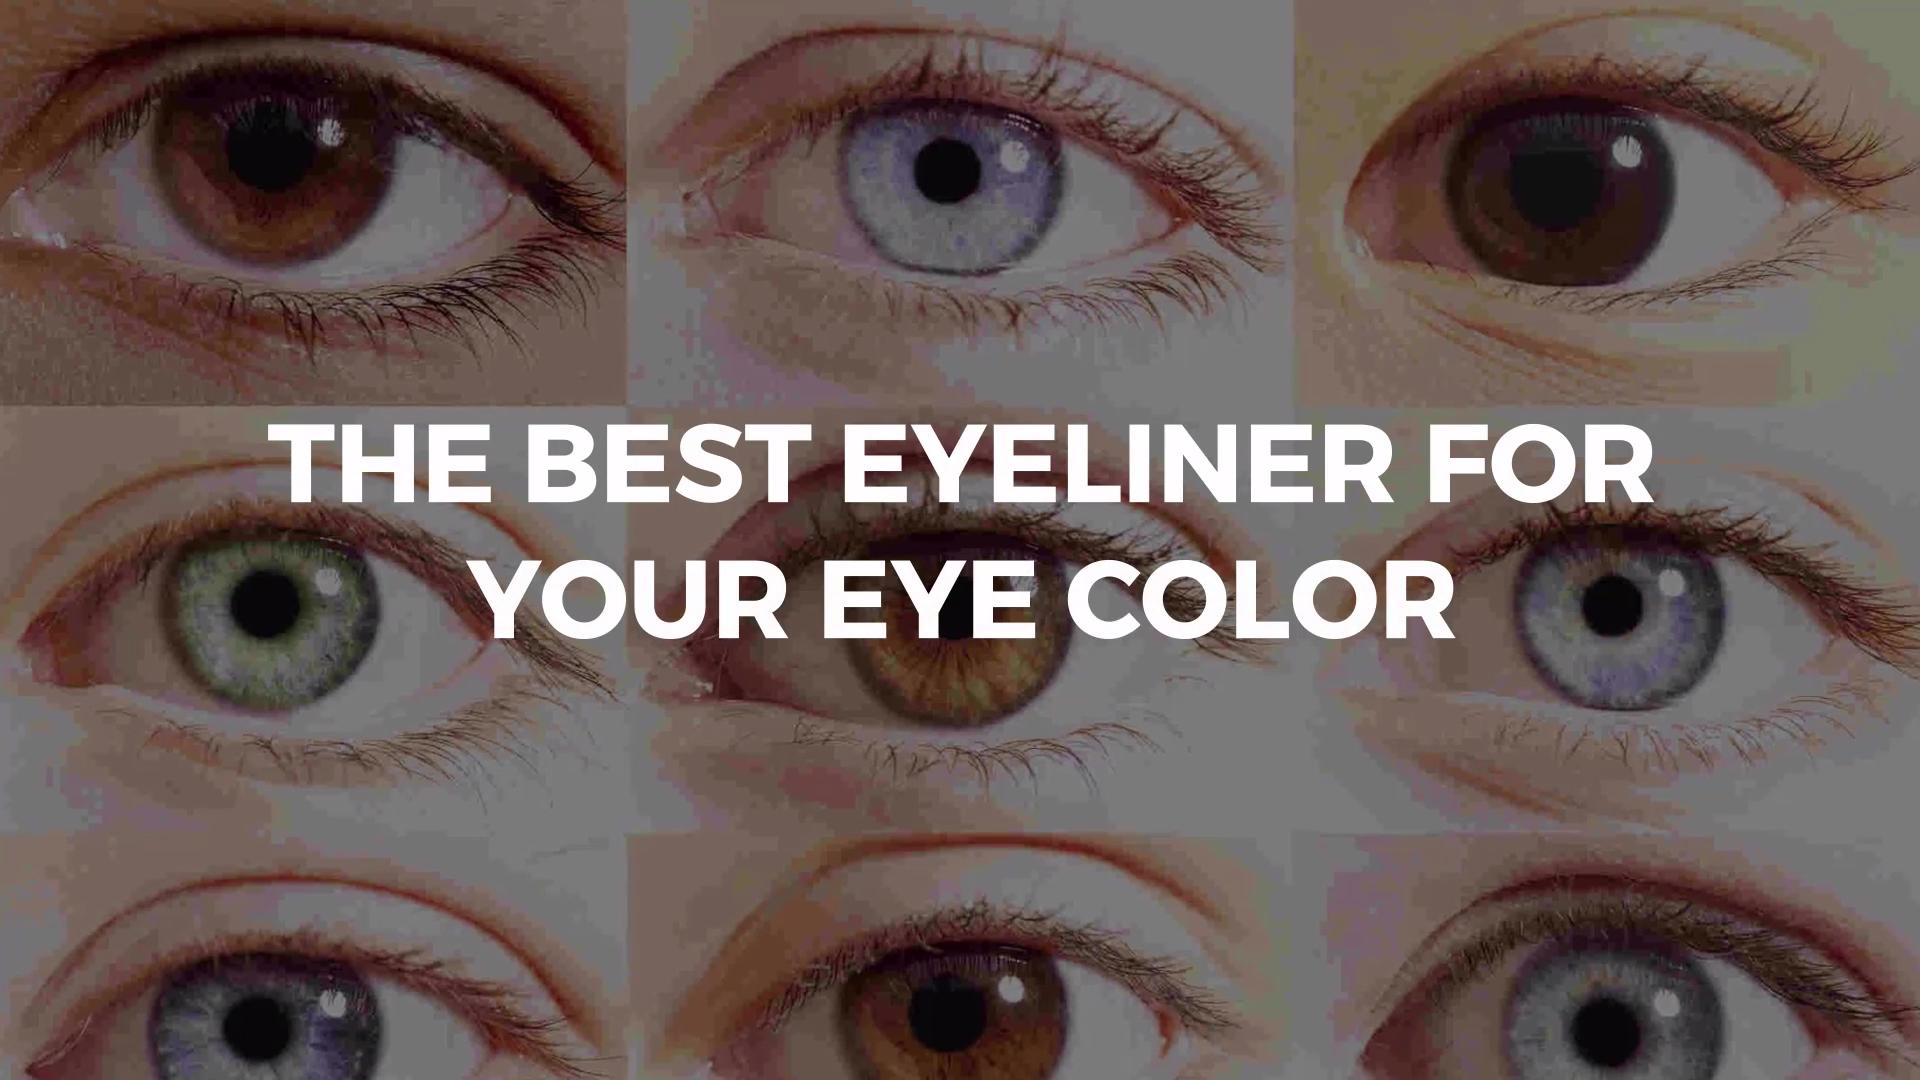 The Best Eyeliner for Your Eye Color